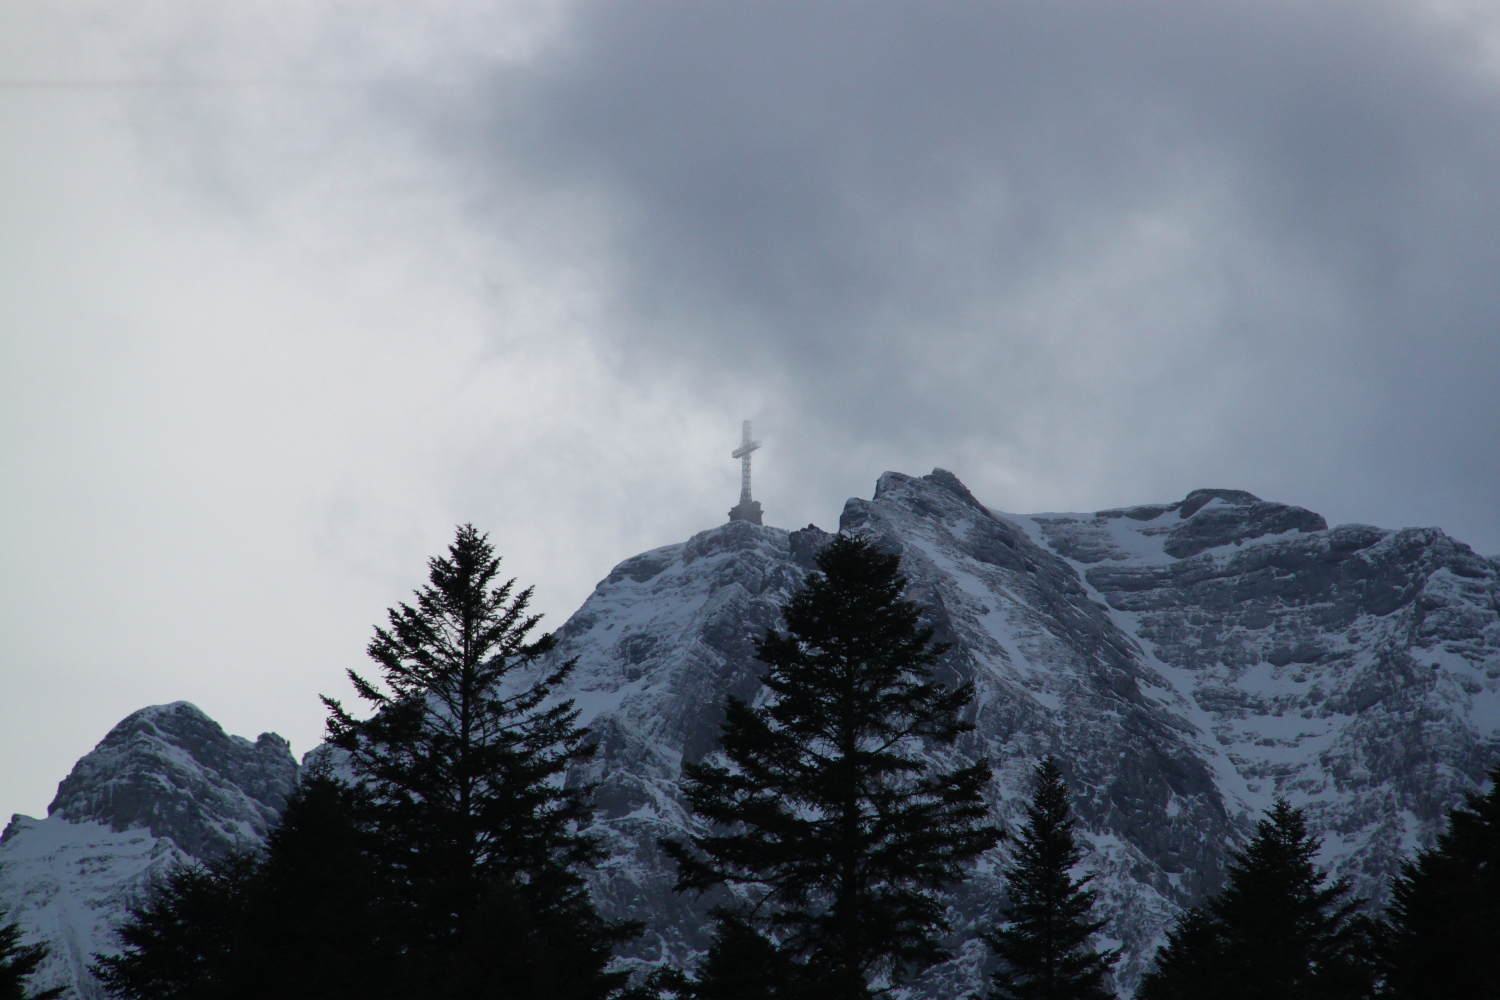 Heroes' Cross on the Caraiman Peak, Romania is World's largest Cross at High Altitude